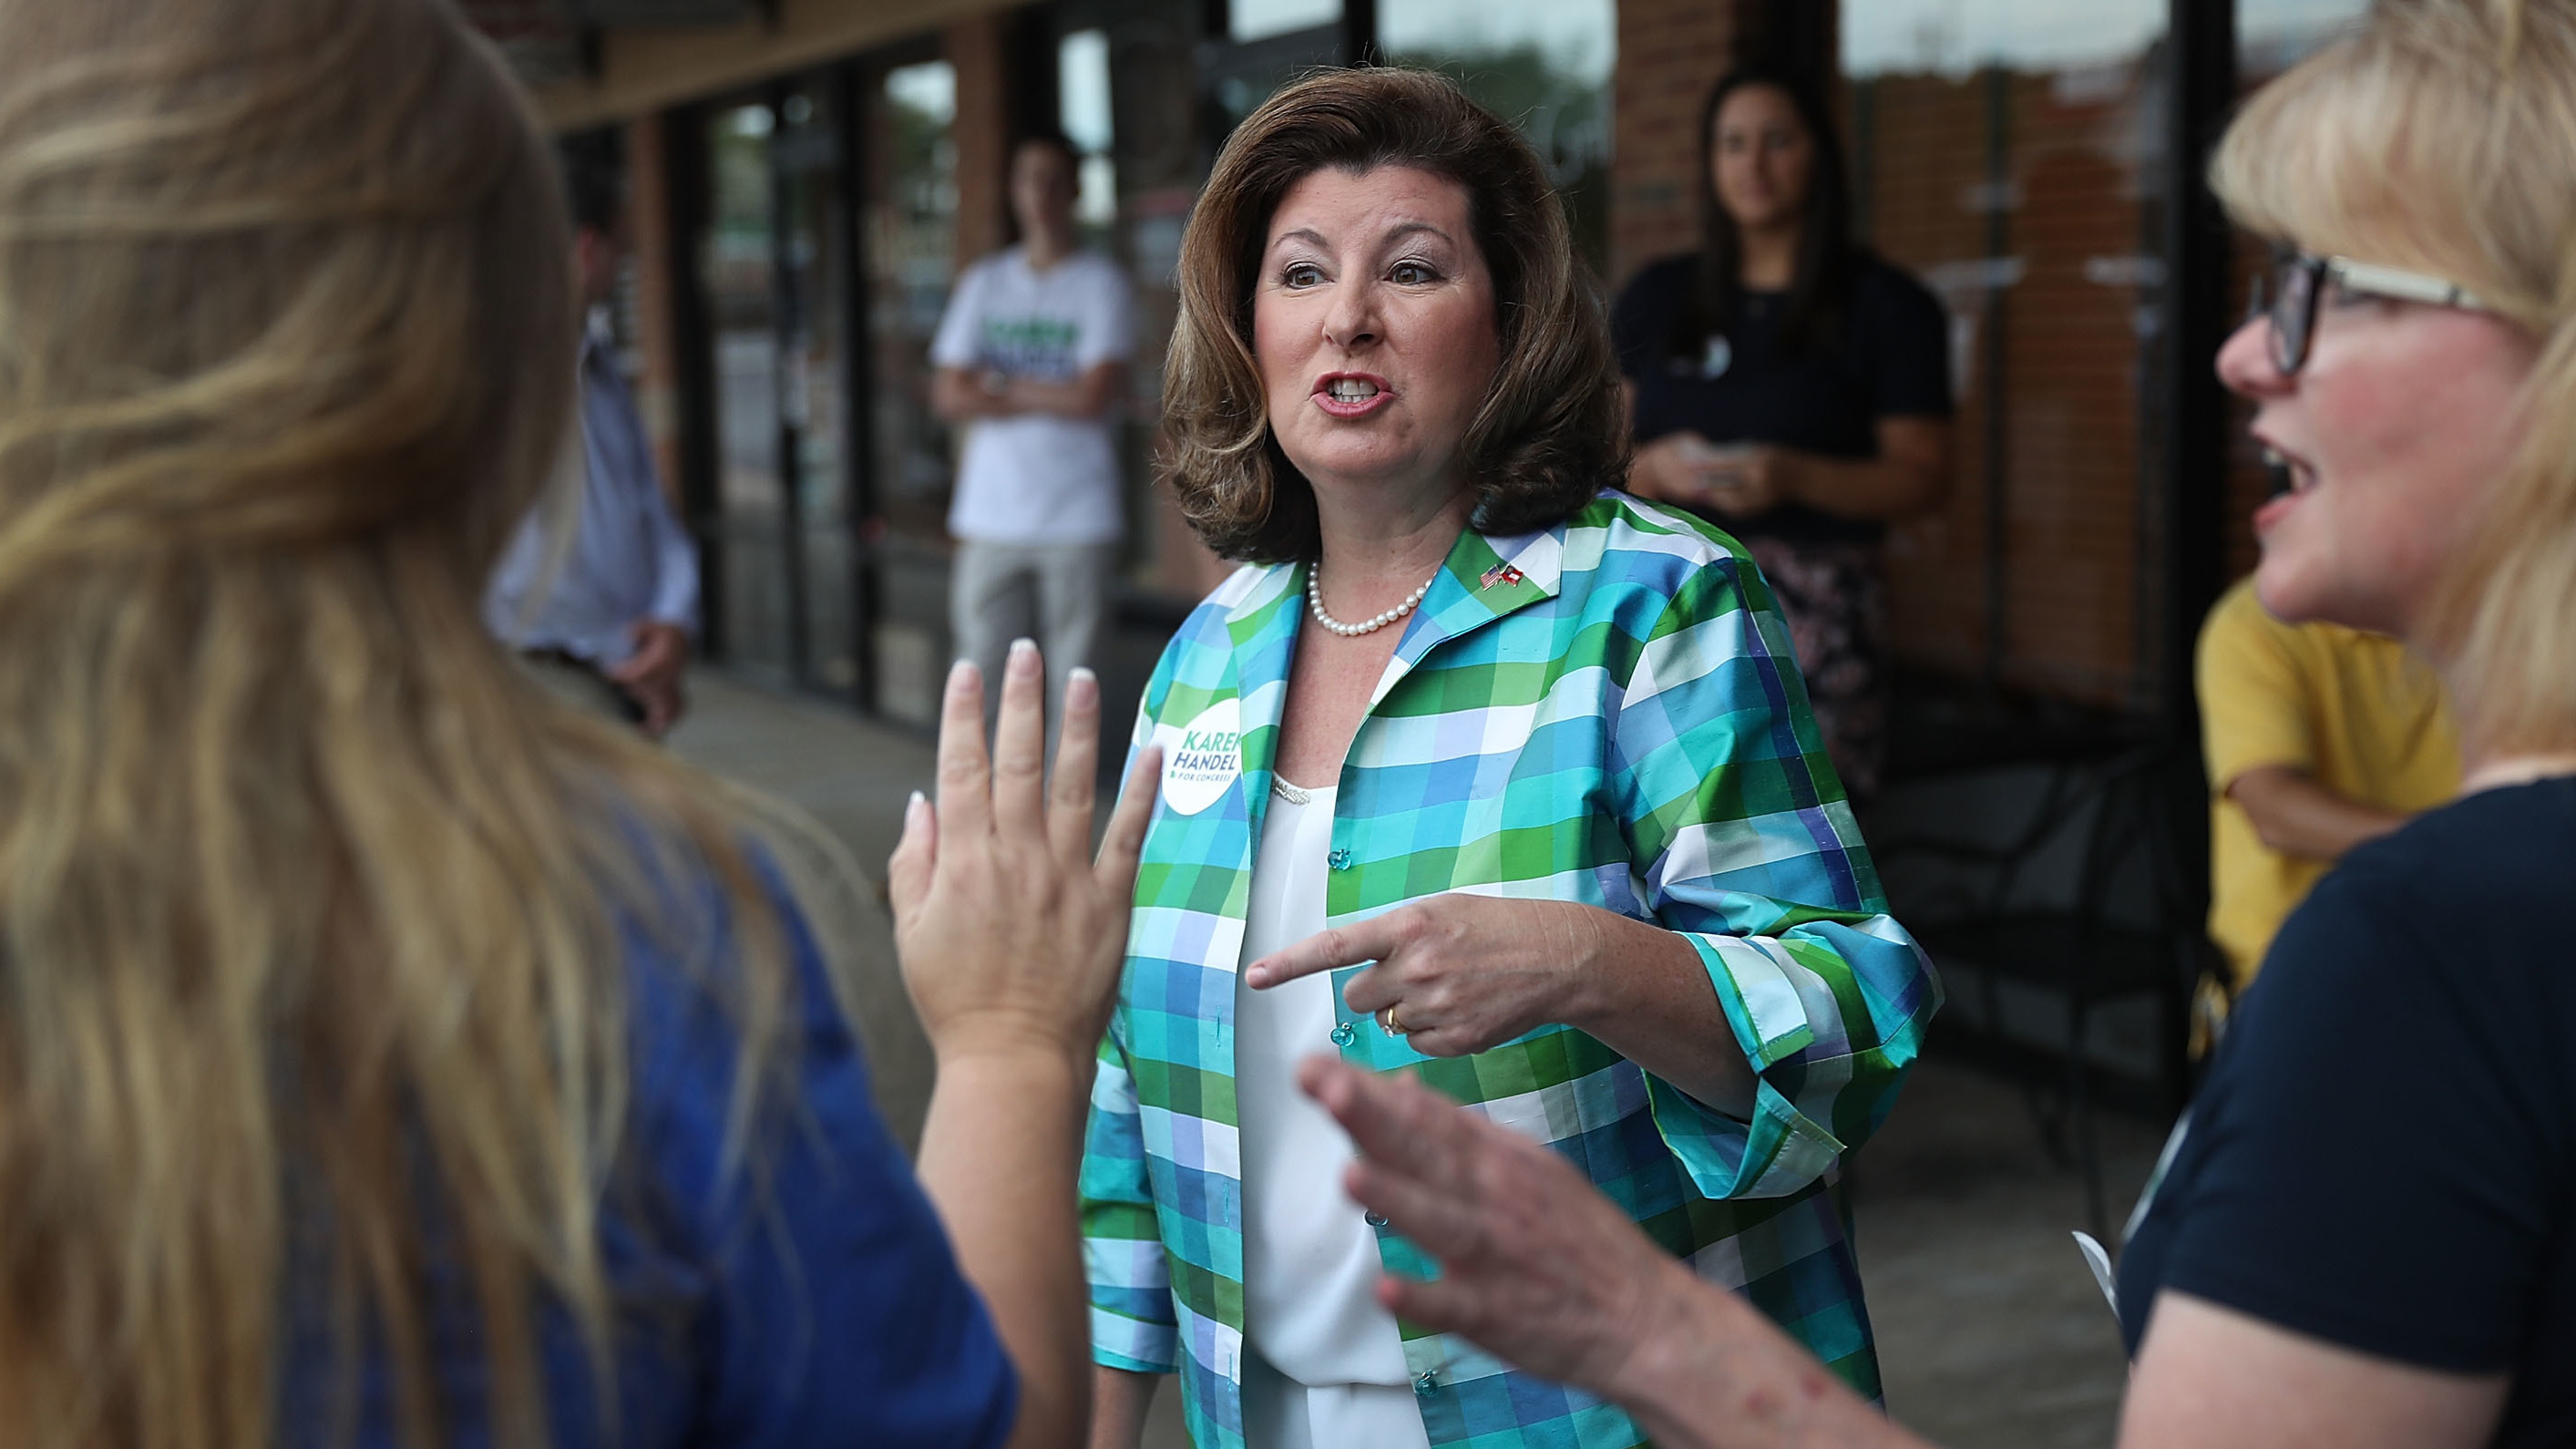 DEMS DEFEATED AGAIN: Republican Handel Wins Georgia Special Election